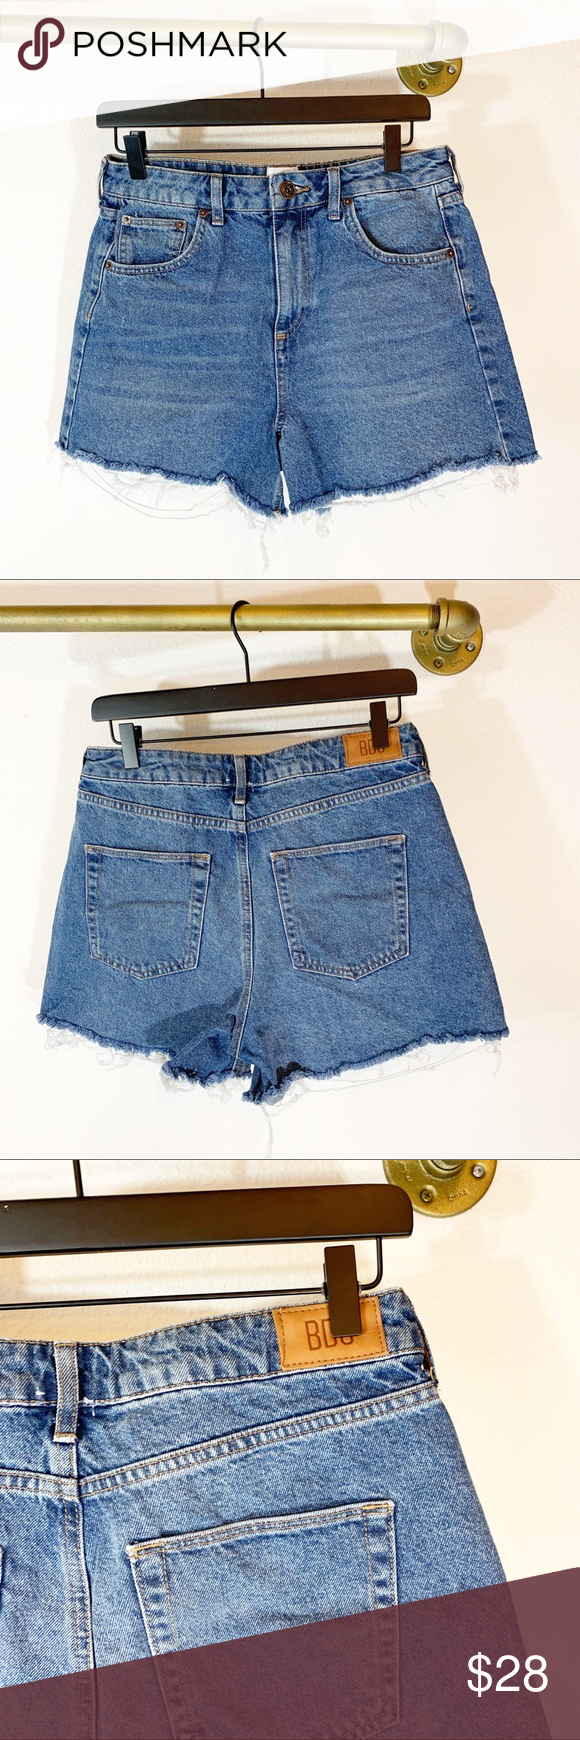 BDG Mom High Rise Denim Cutoff Shorts Jean cutoff mom shorts Excellent condition  No flaws Size 30 BDG Shorts Jean Shorts #denimcutoffshorts BDG Mom High Rise Denim Cutoff Shorts Jean cutoff mom shorts Excellent condition  No flaws Size 30 BDG Shorts Jean Shorts #denimcutoffshorts